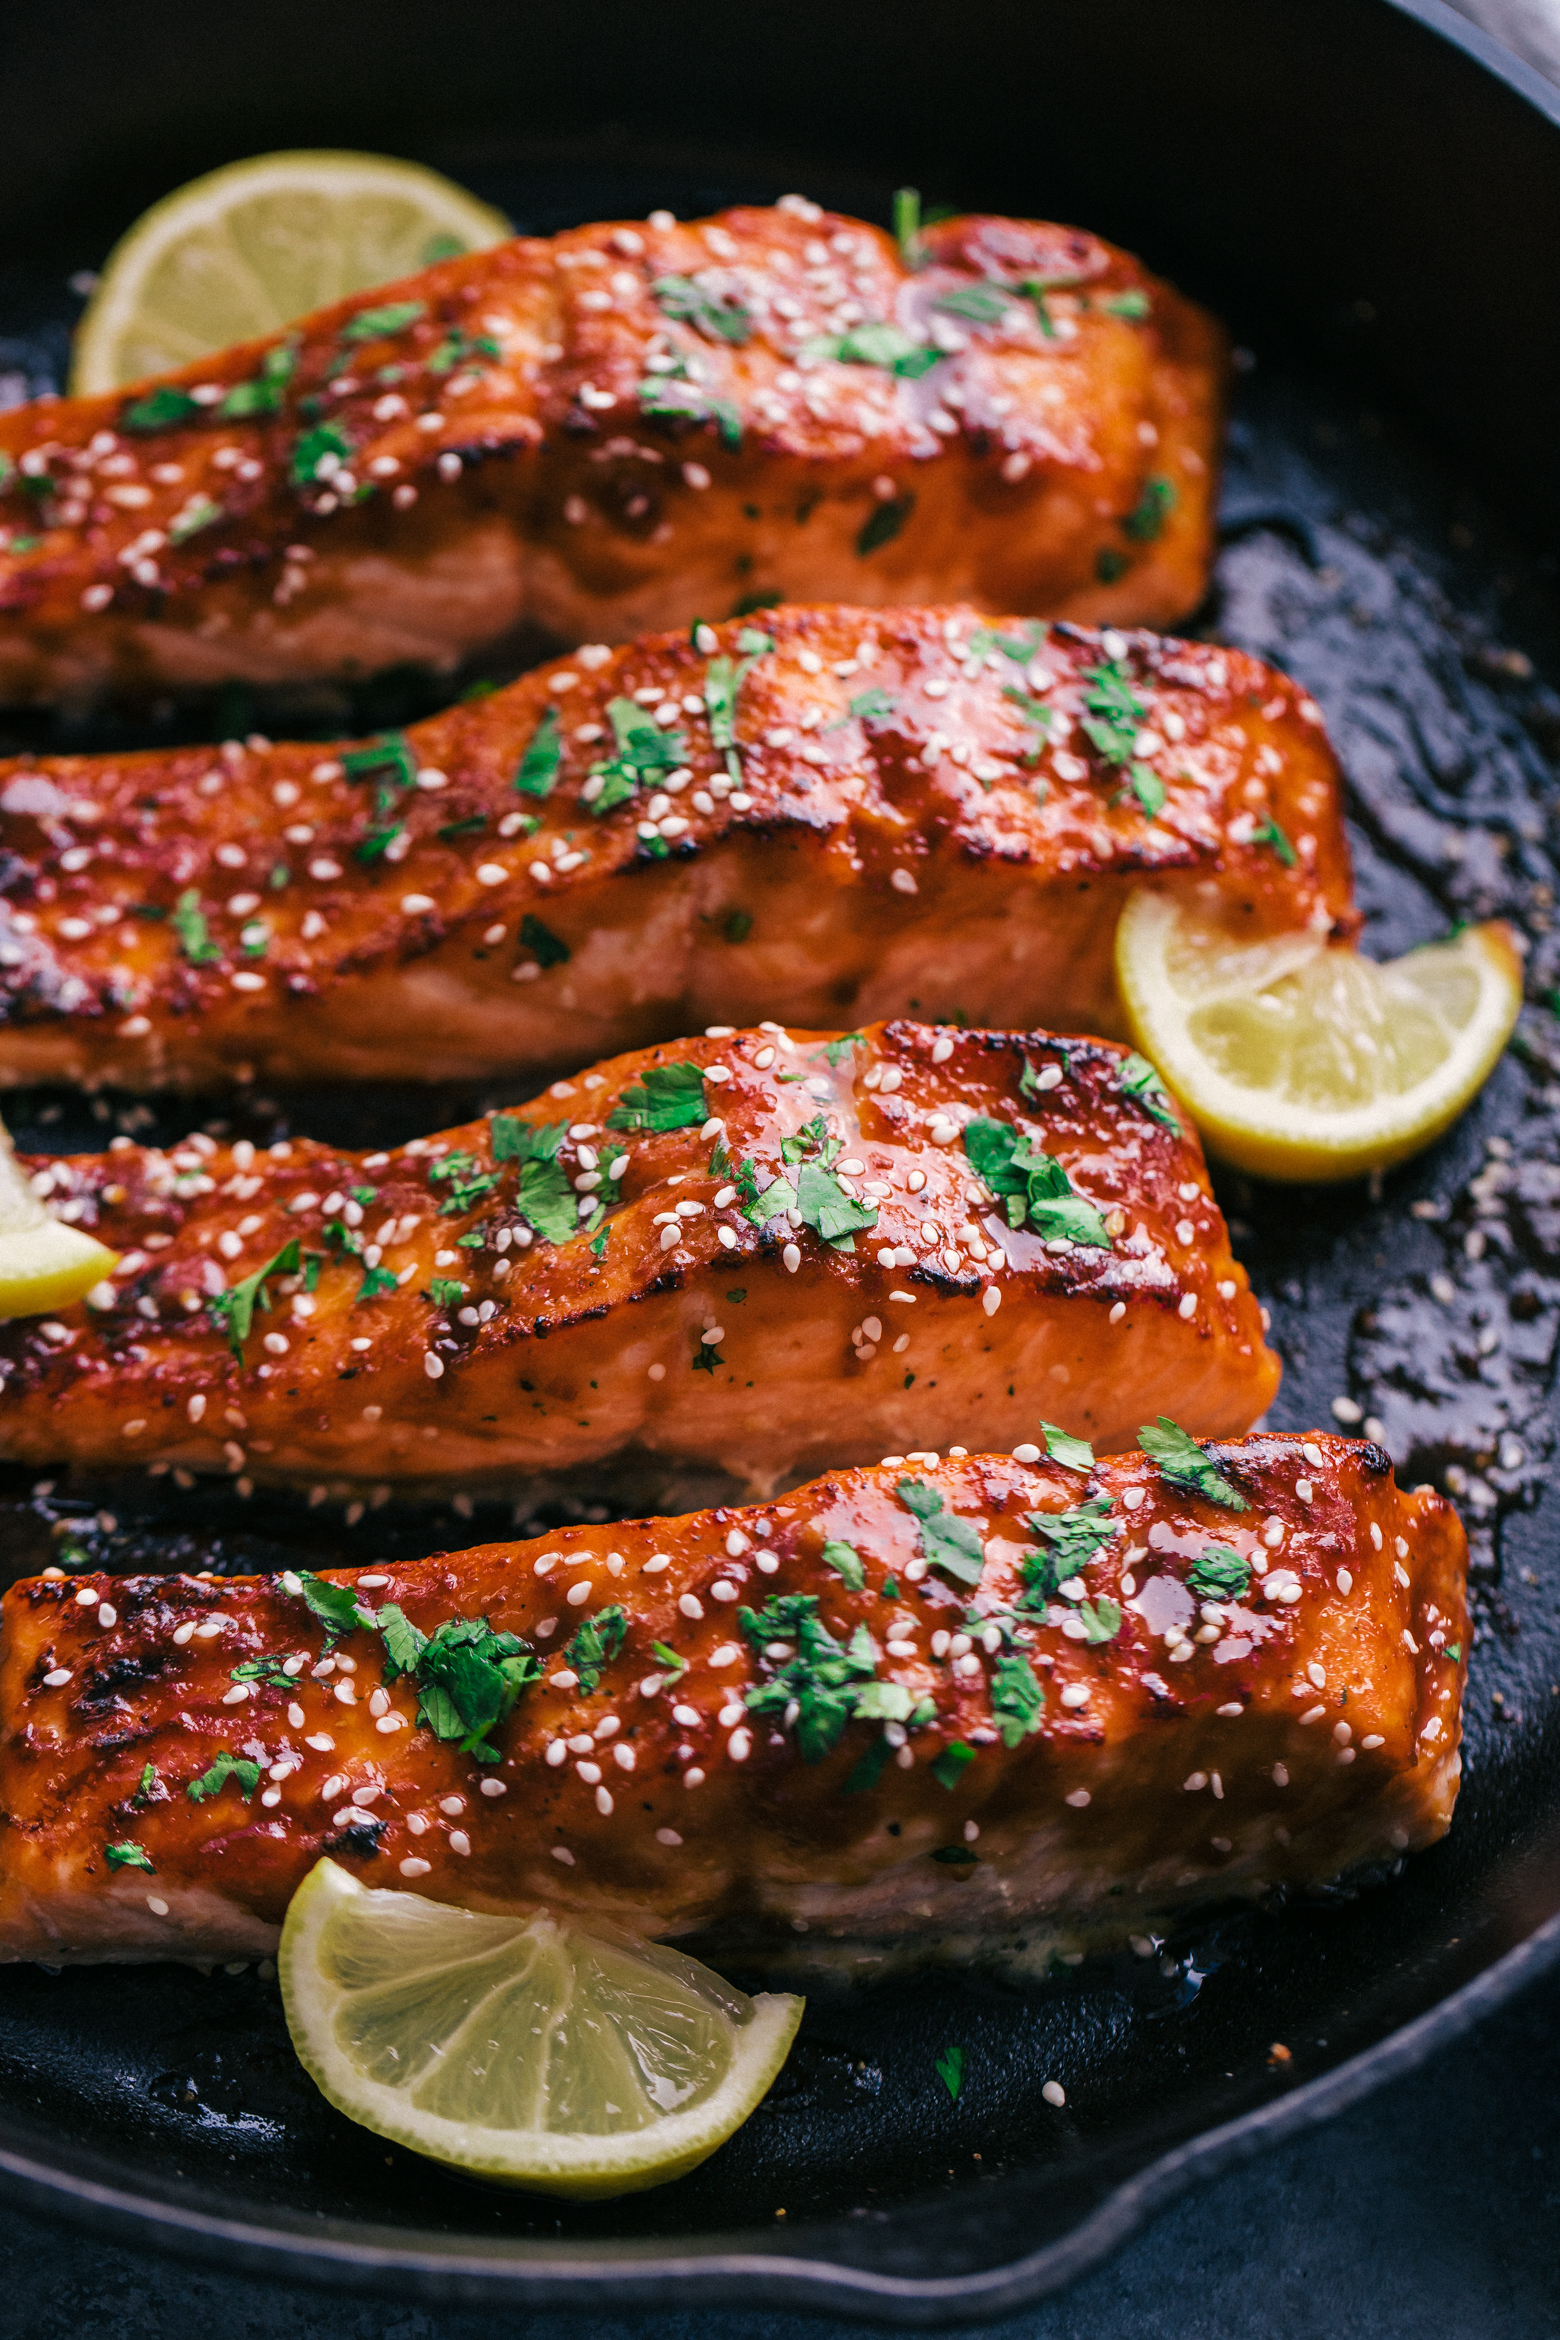 maple glazed salmon in a cast iron skillet topped with fresh chopped herbs and slices of lemon by The Food Cafe